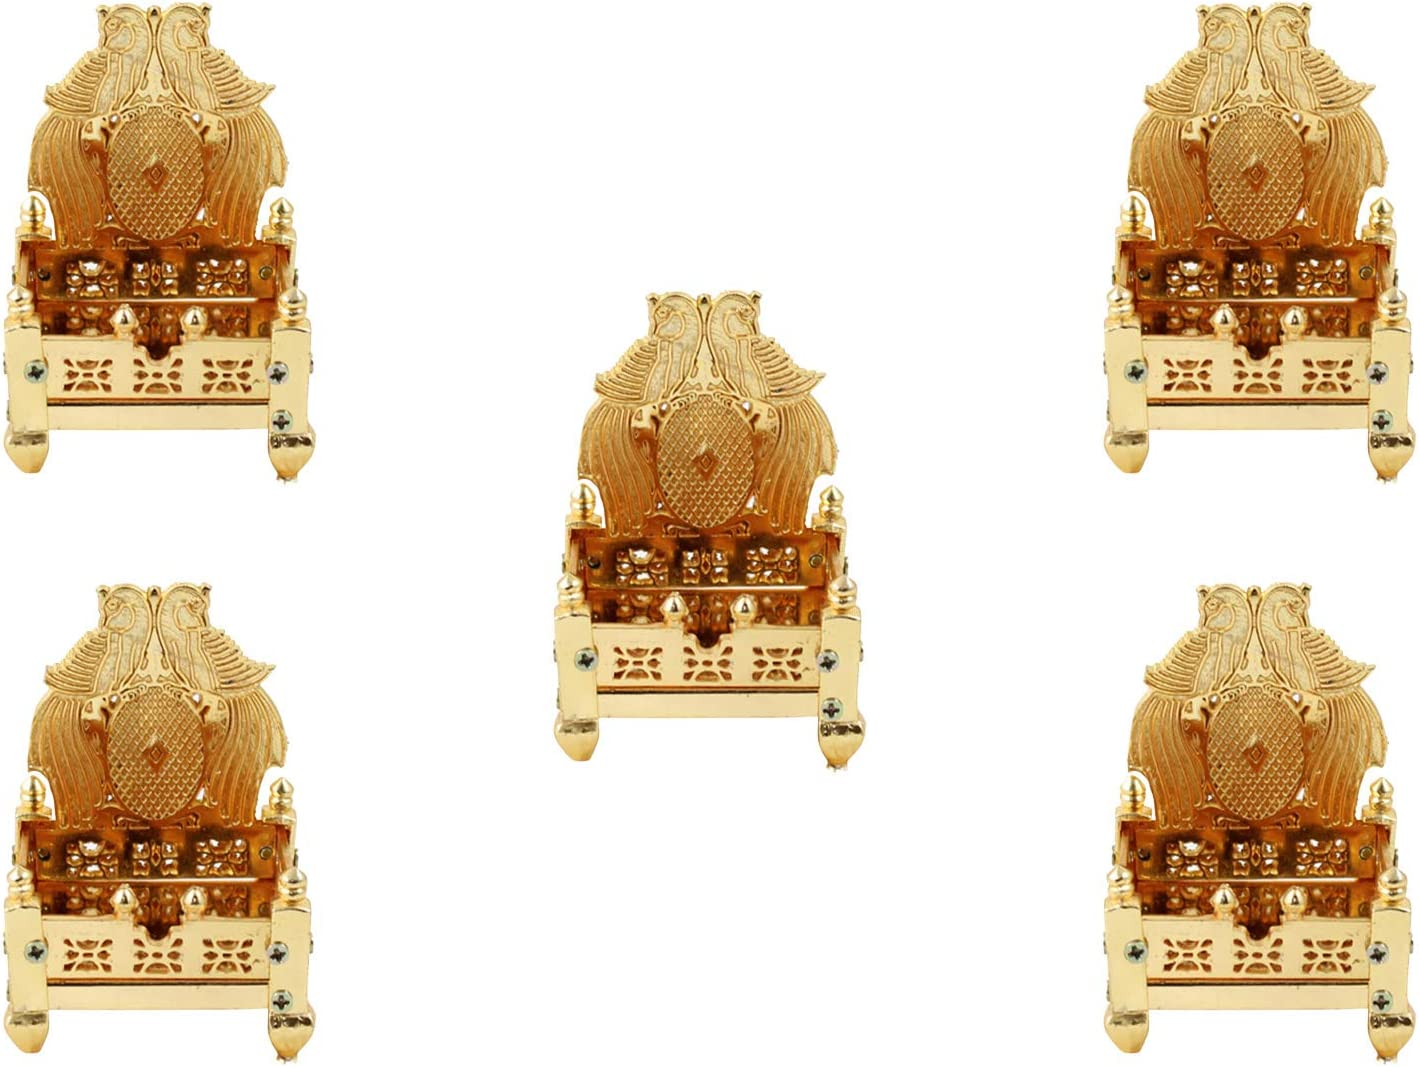 GodGiftIdeas Gold Plated Peacock Design Singhasan for Gods, Indian Return Gifts for Pooja, Chowki for Puja, Pooja Items for Home Temple (Pack of 5) (9.5 x 6.5)